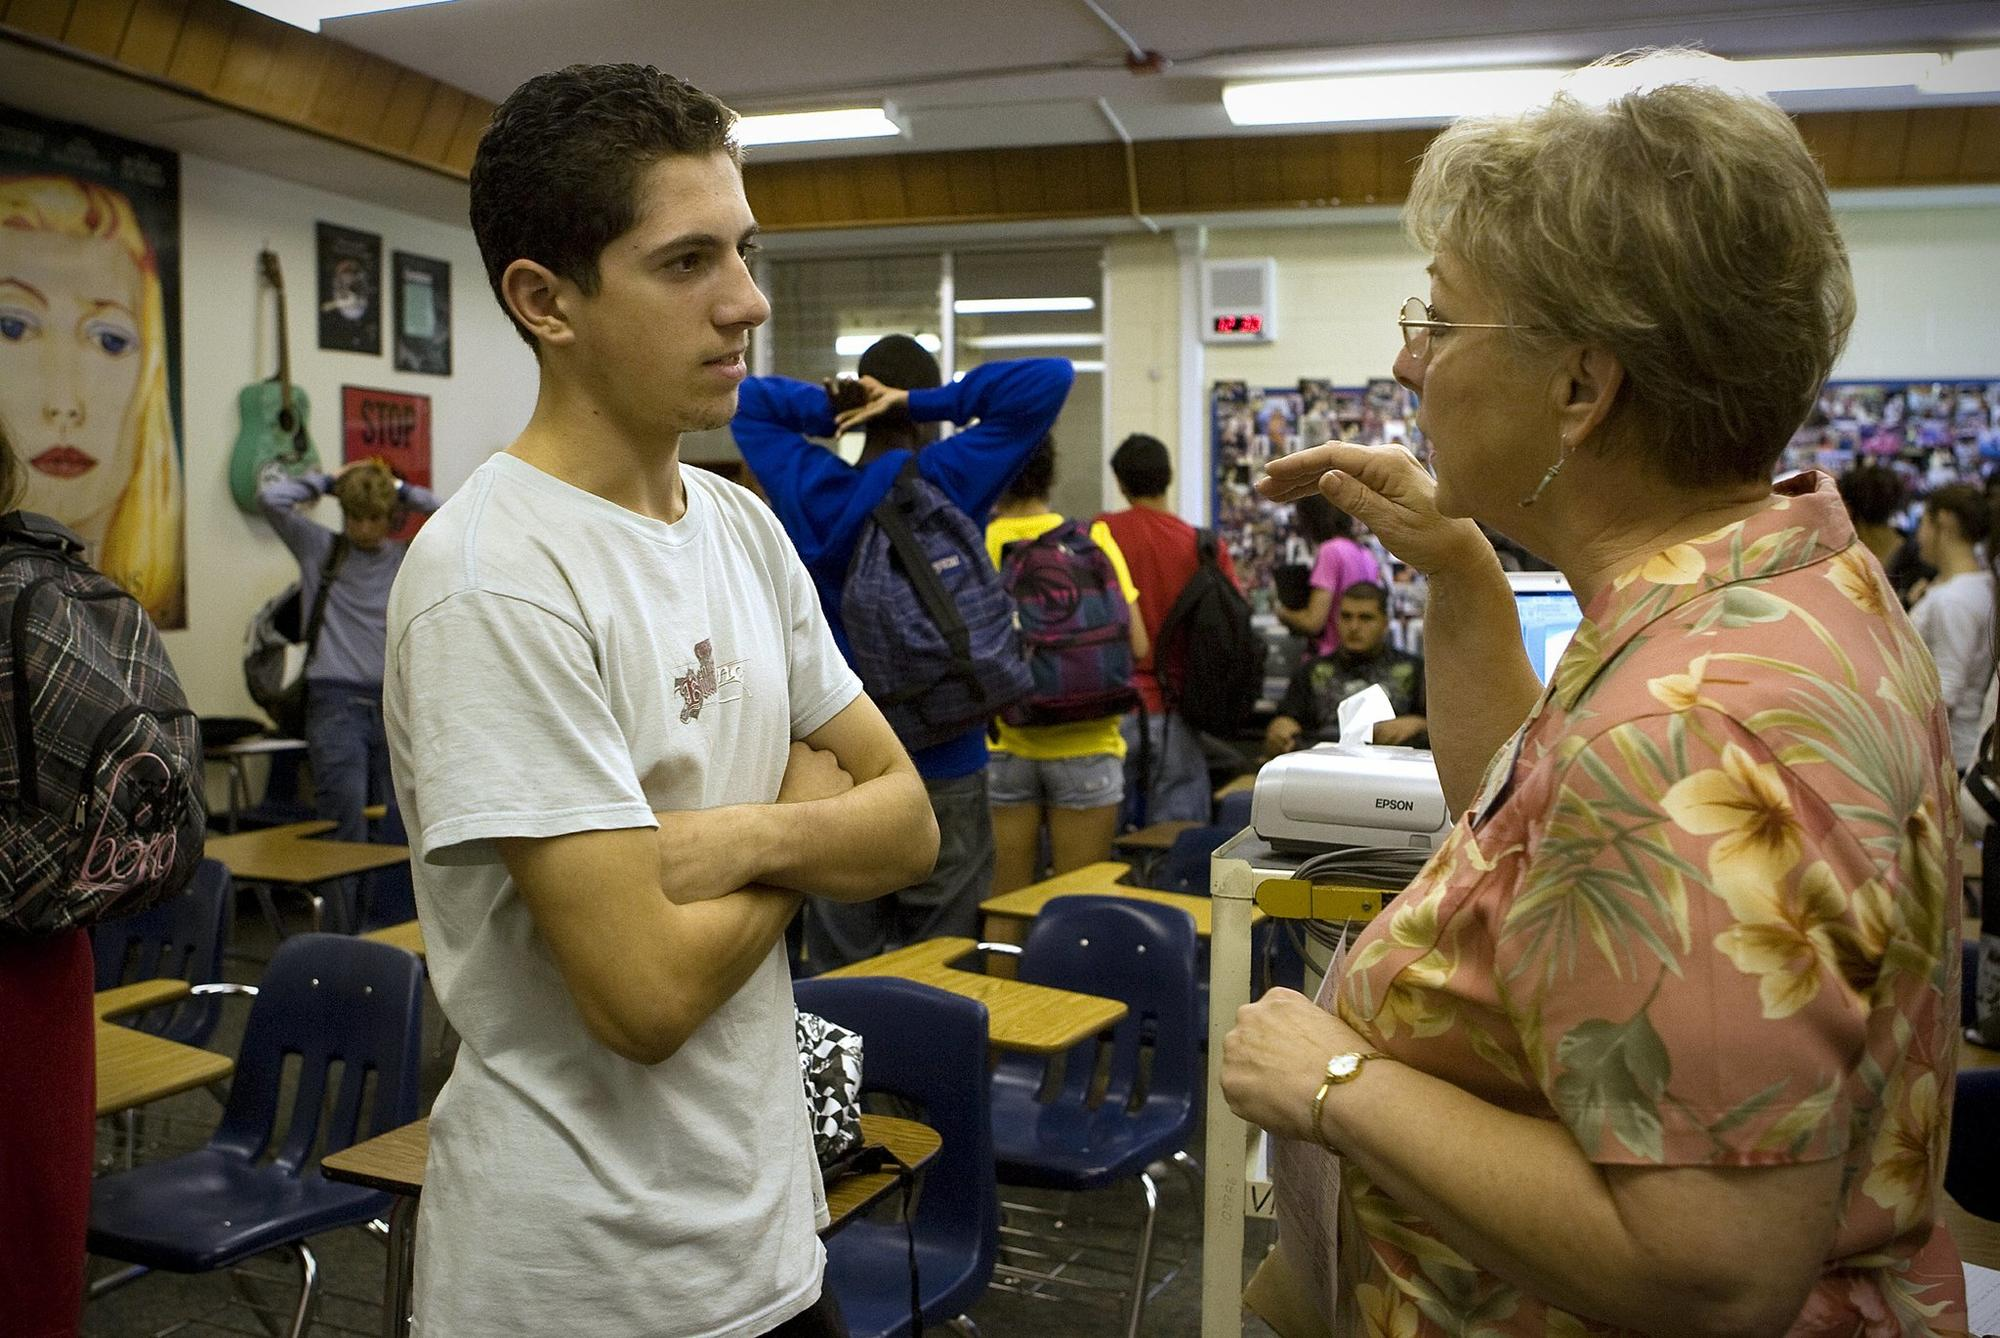 Steve Habba, 17, a senior at Valhalla High School in El Cajon, spoke with school counselor Elaine Swatniki, who held a class for seniors on how to plan for their post-secondary e